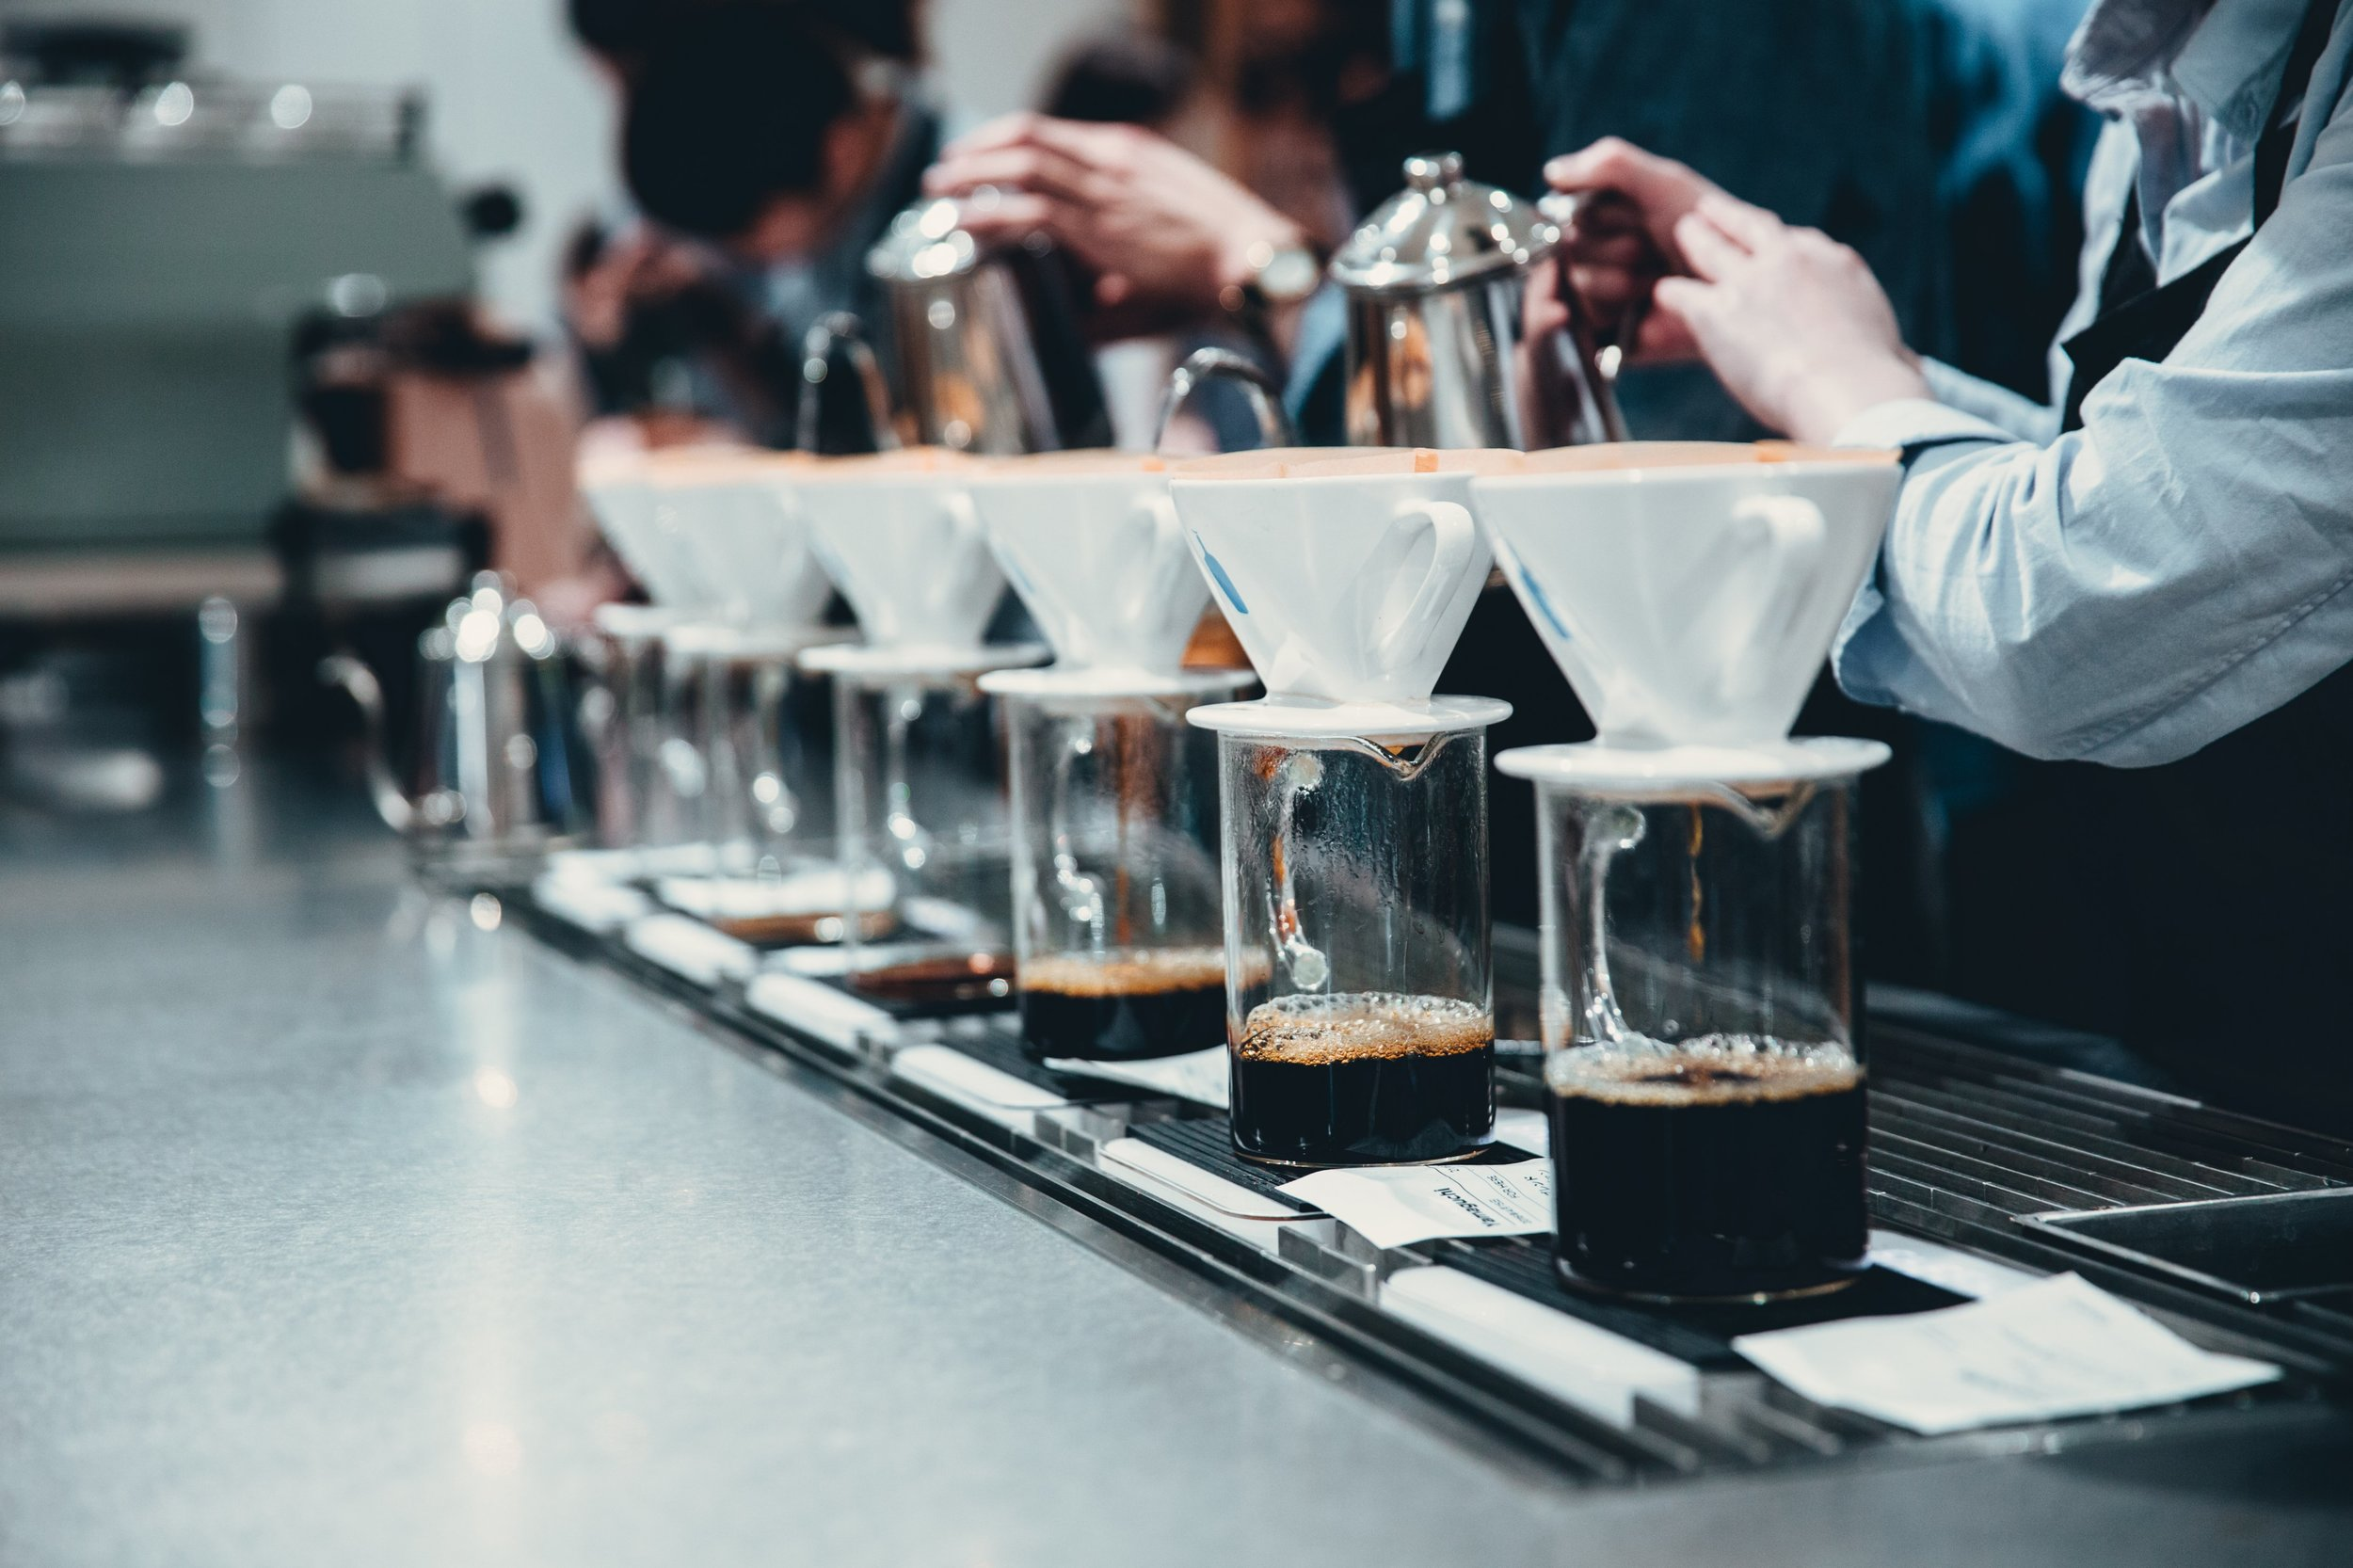 Learn - Visit our knowledge center for more tips on brewing great coffee